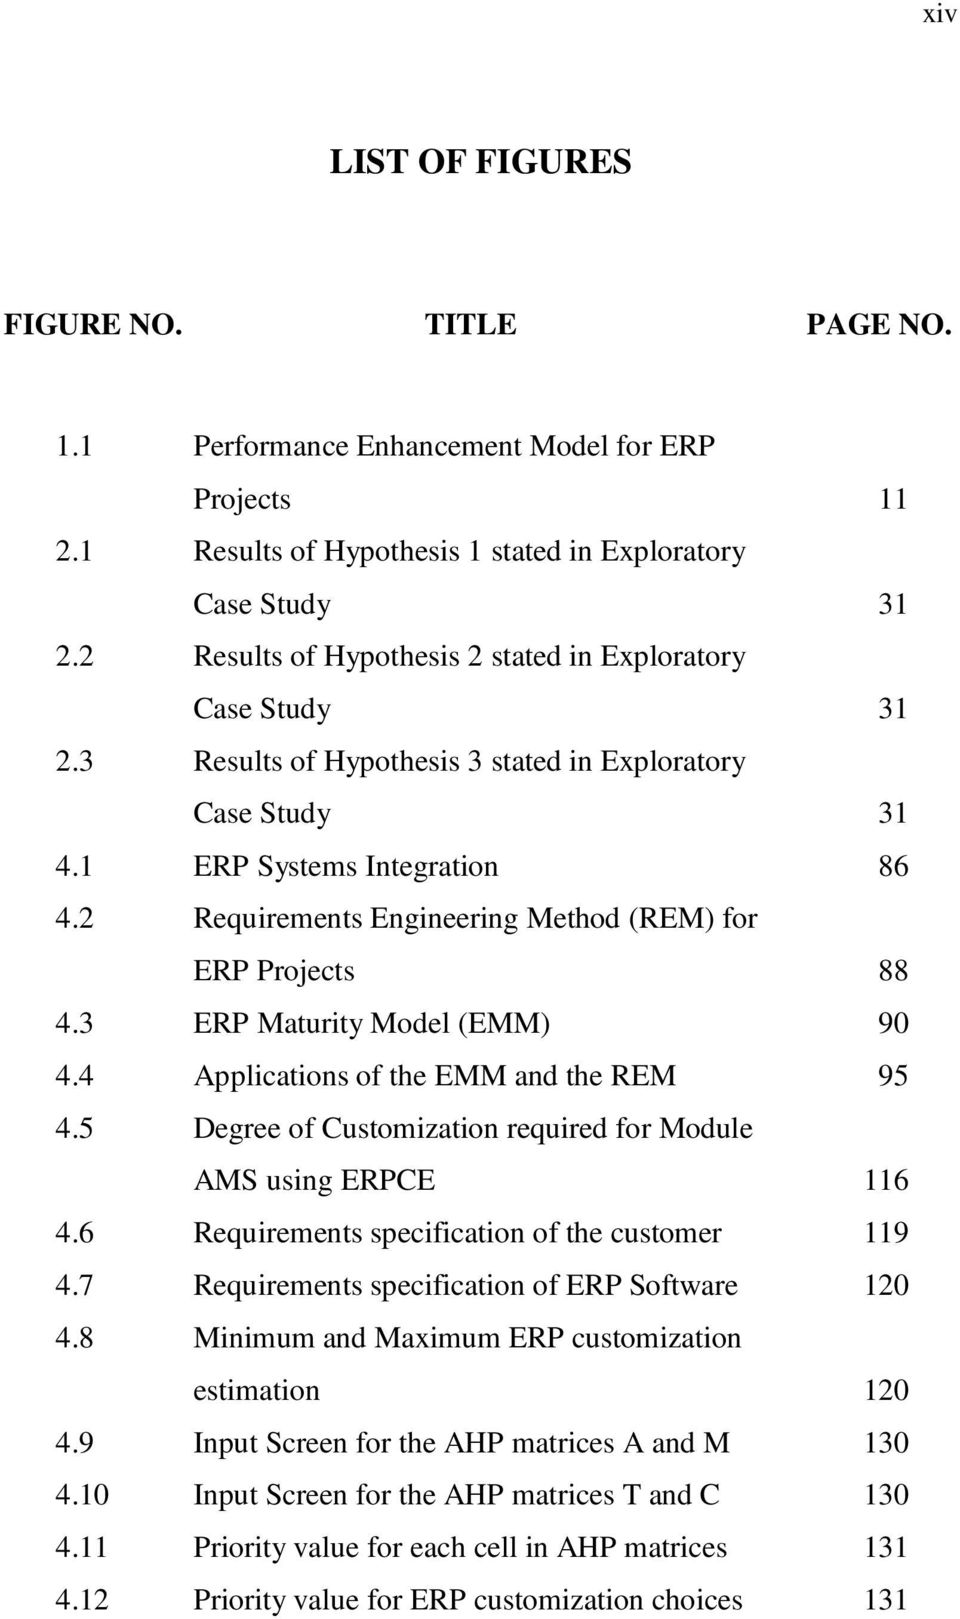 2 Requirements Engineering Method (REM) for ERP Projects 88 4.3 ERP Maturity Model (EMM) 90 4.4 Applications of the EMM and the REM 95 4.